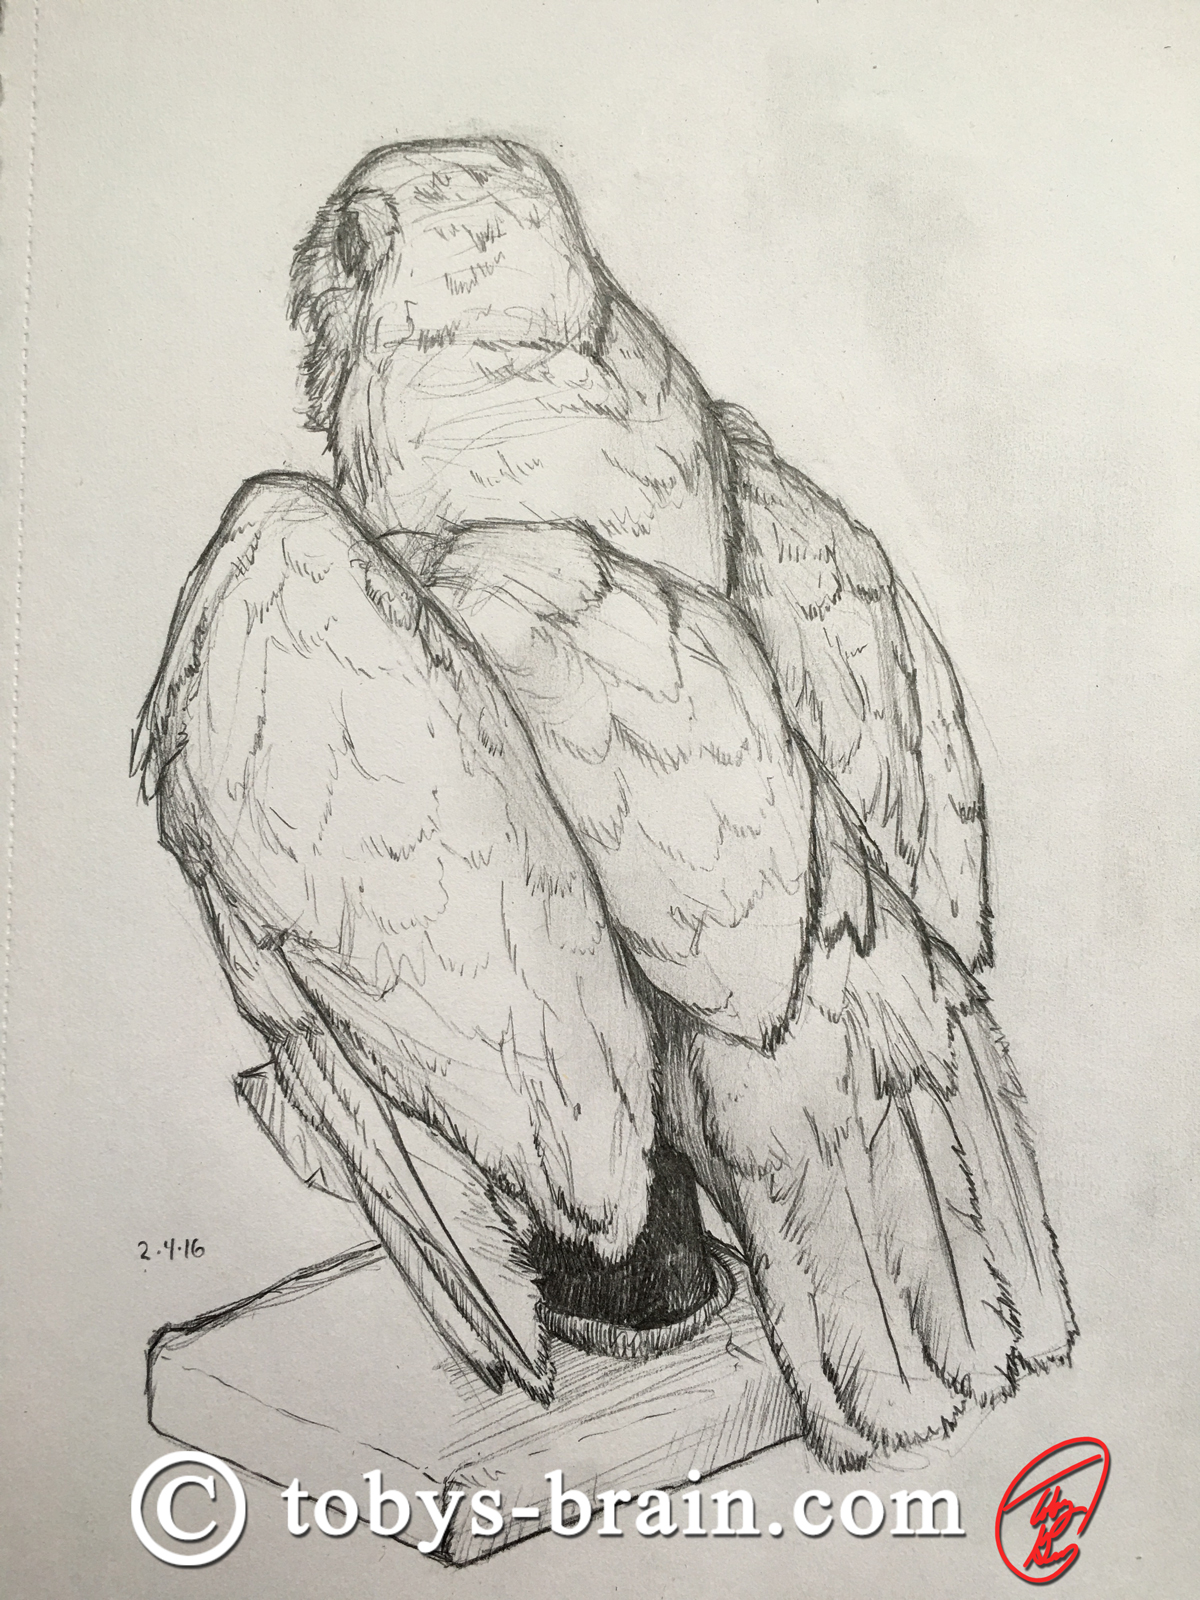 Sketch of a spotted owl from a taxidermied specimen.